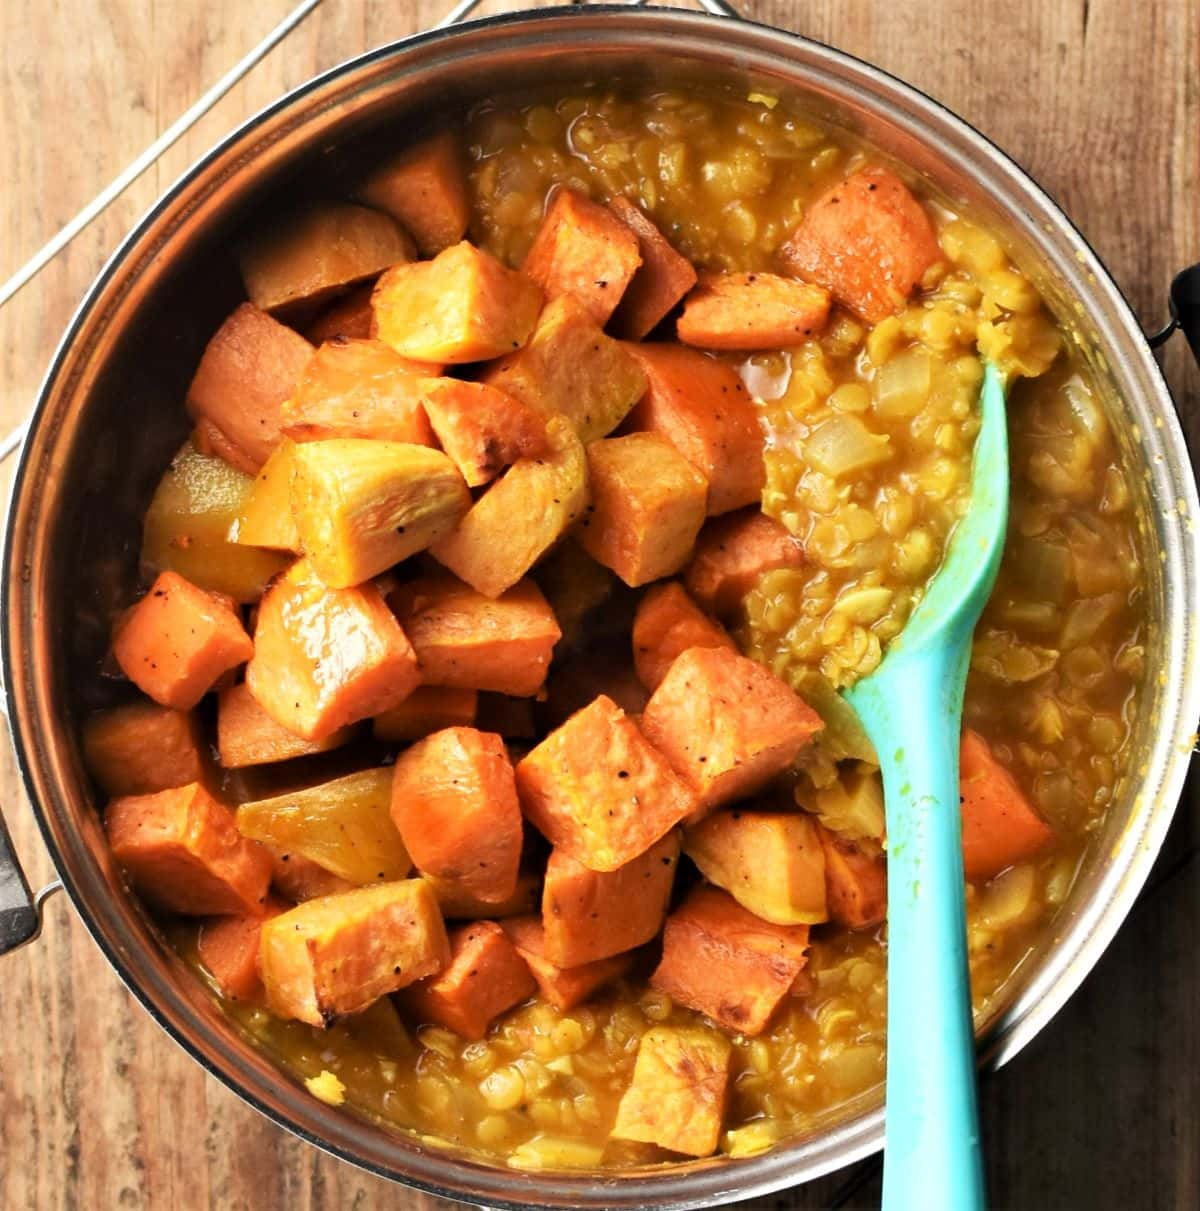 Cubed roasted sweet potato being stirred into dahl.